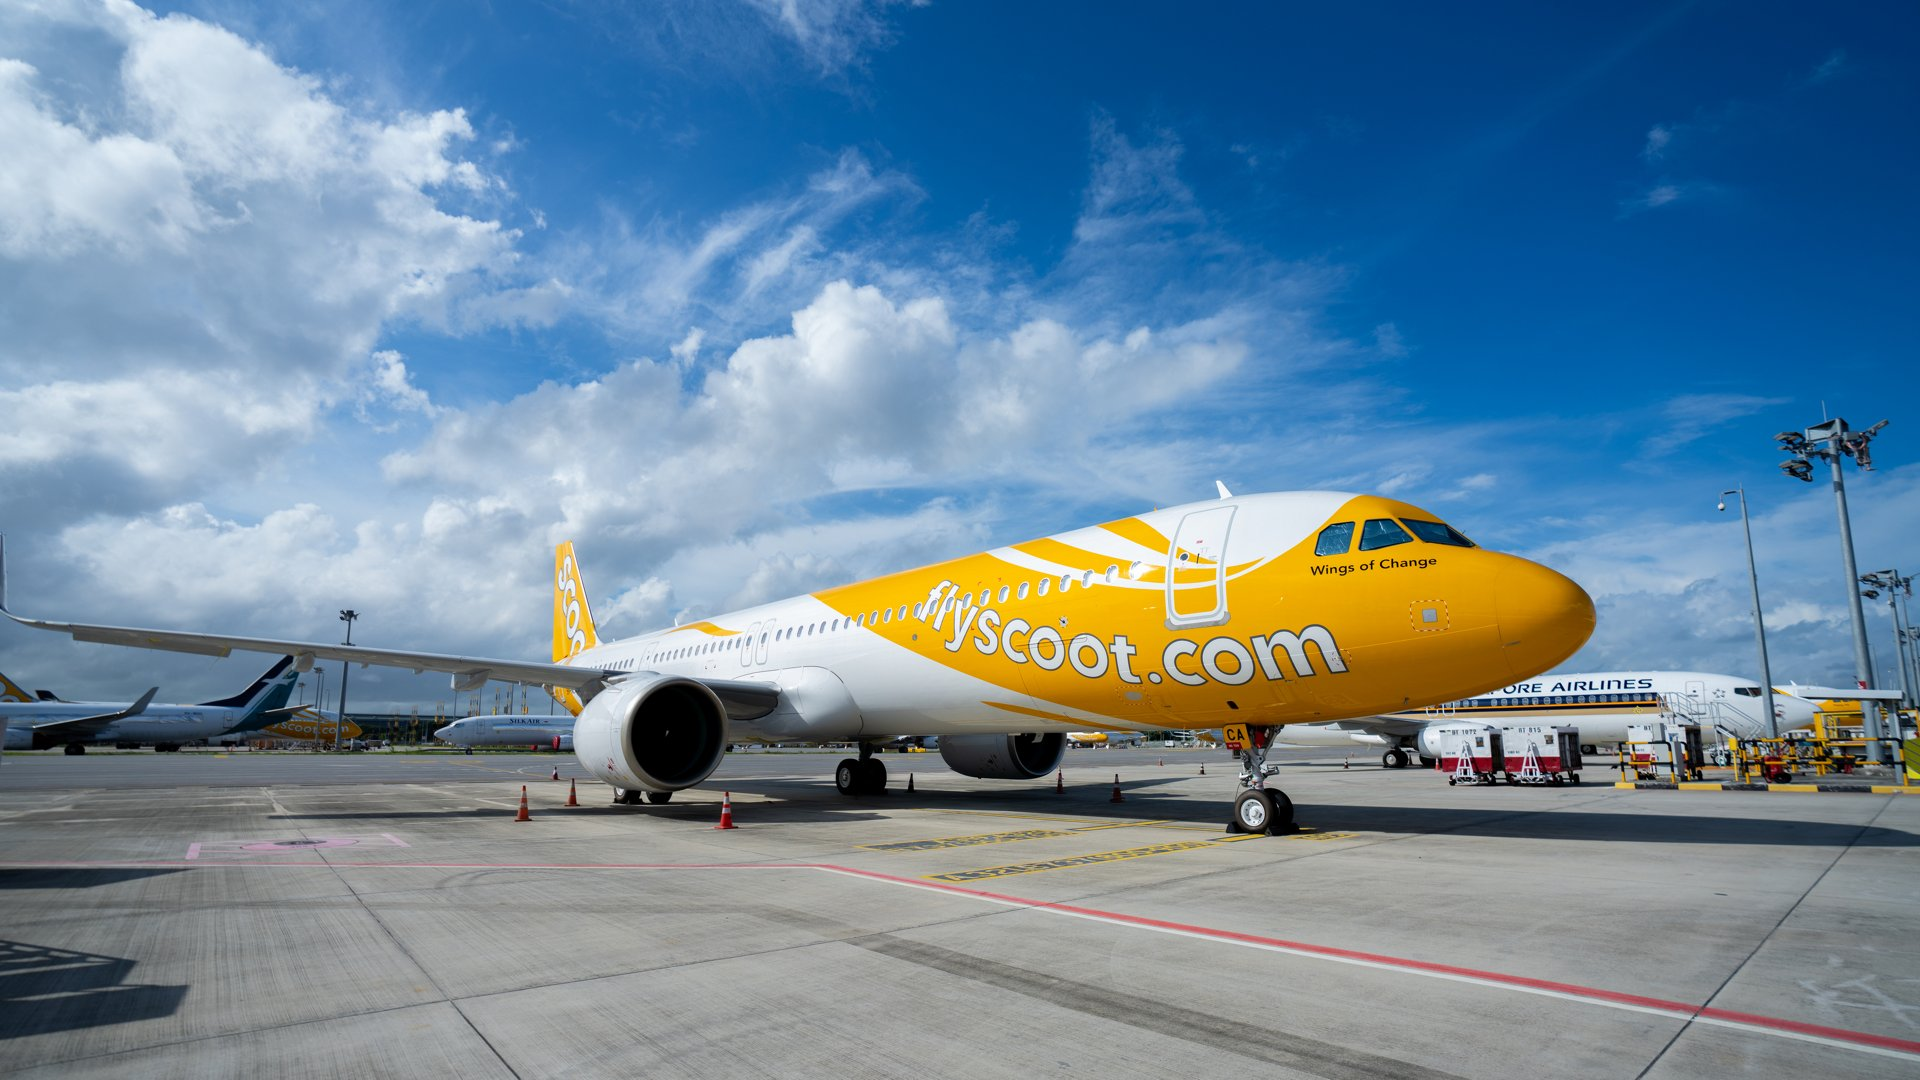 Scoot's 1st A321neo at Singapore Changi Airport